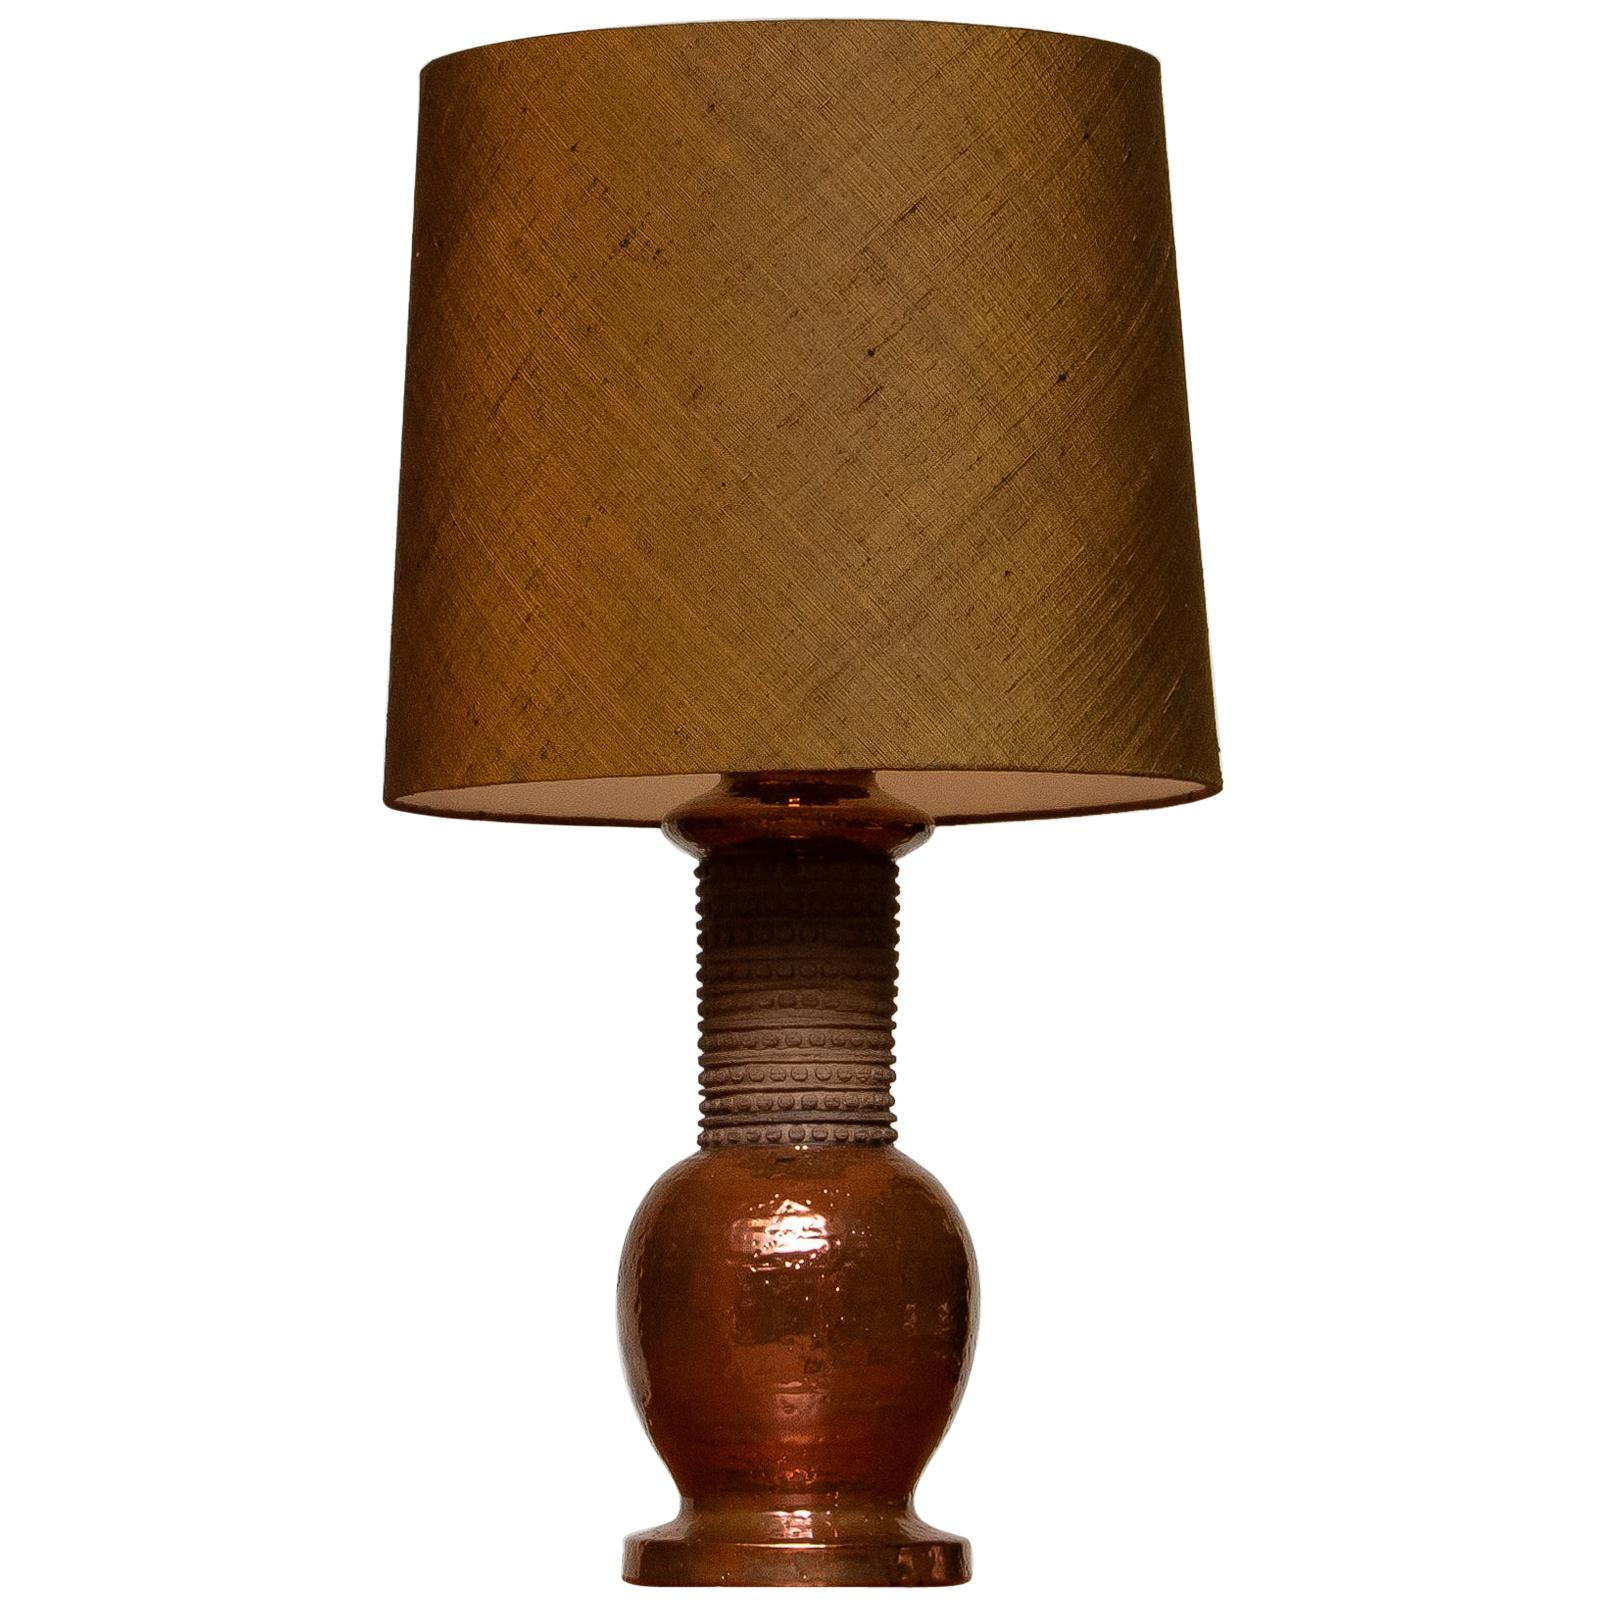 1960s. Ceramic And Copper Bitossi Italy Table Lamp For Bergboms Sweden 1